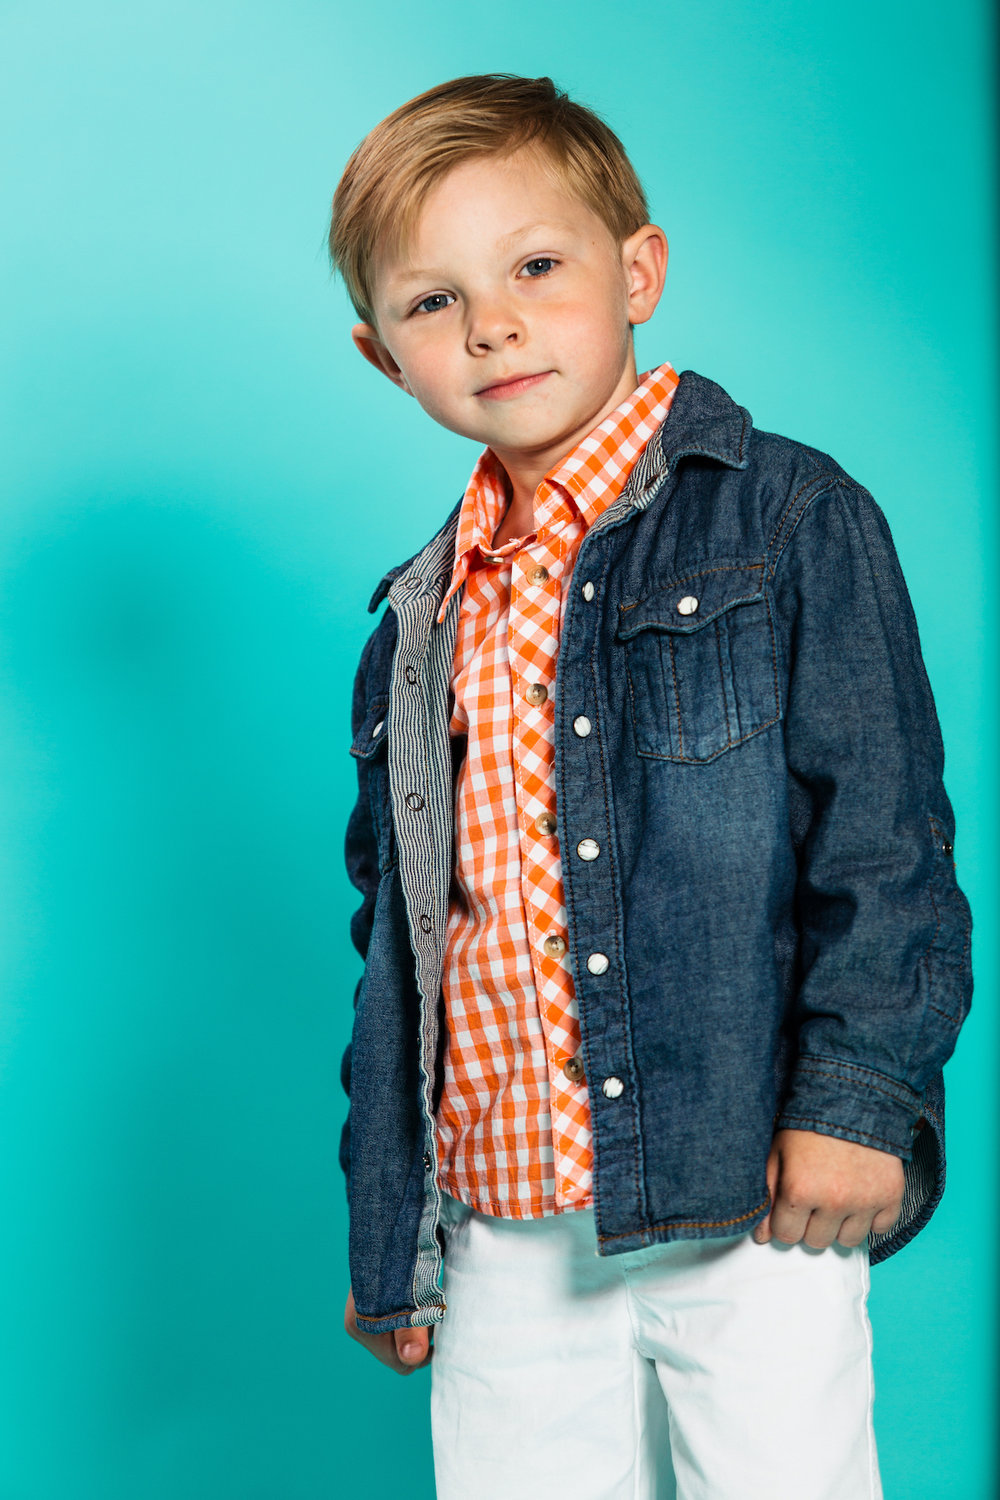 Cody leo (Young Addison) - Cody is excited to work in this film alongside his older brother Austin, who portrays the